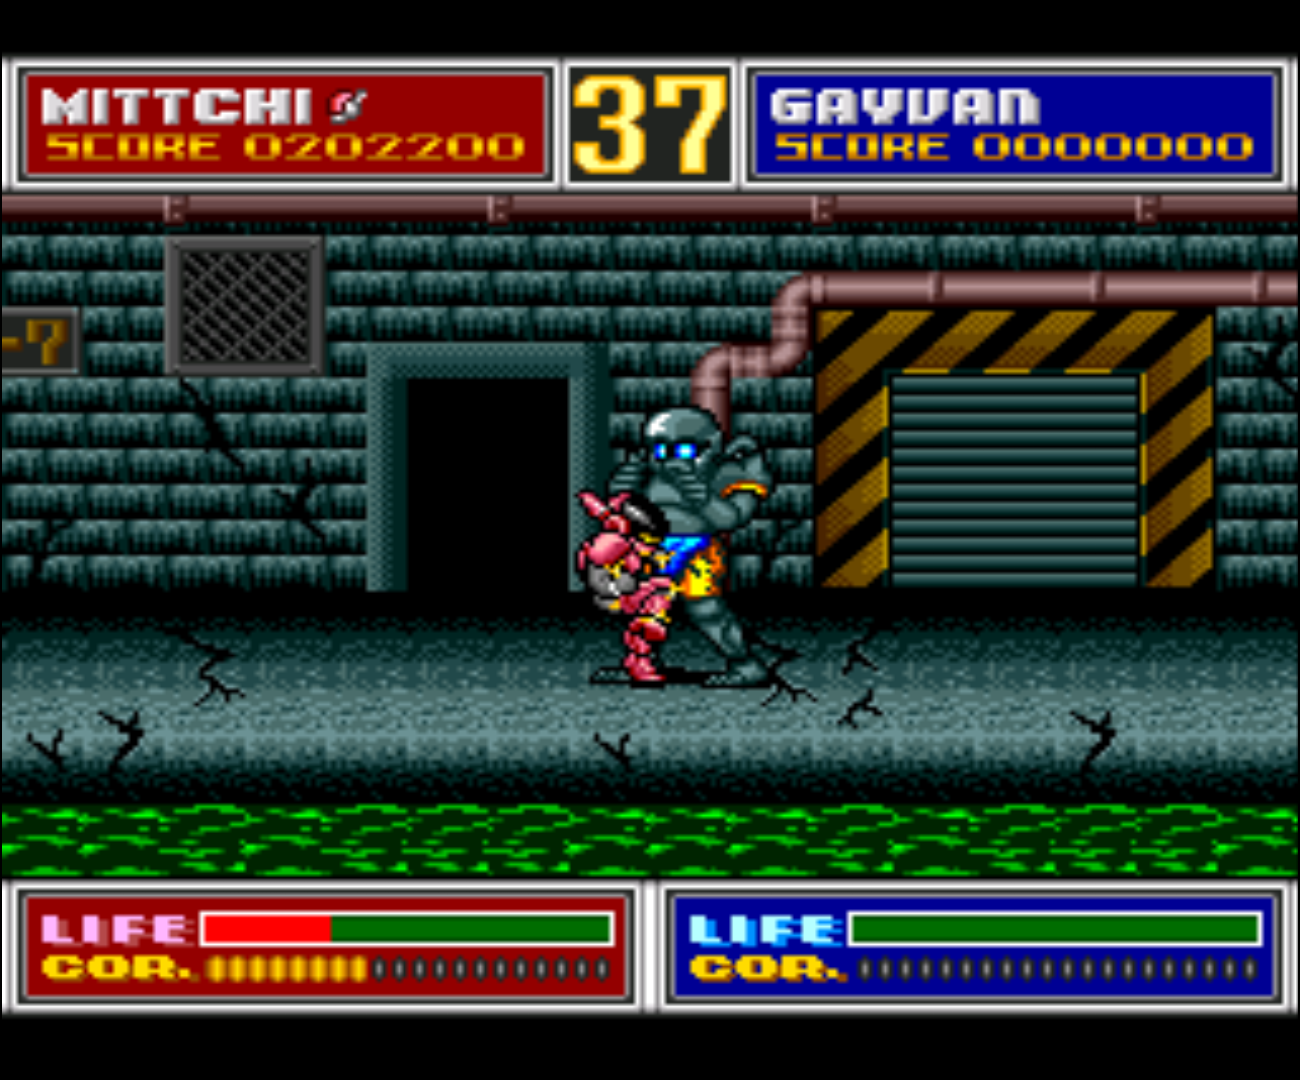 Figure 2 - A boss fight at the end of each level as in every good beat 'em up